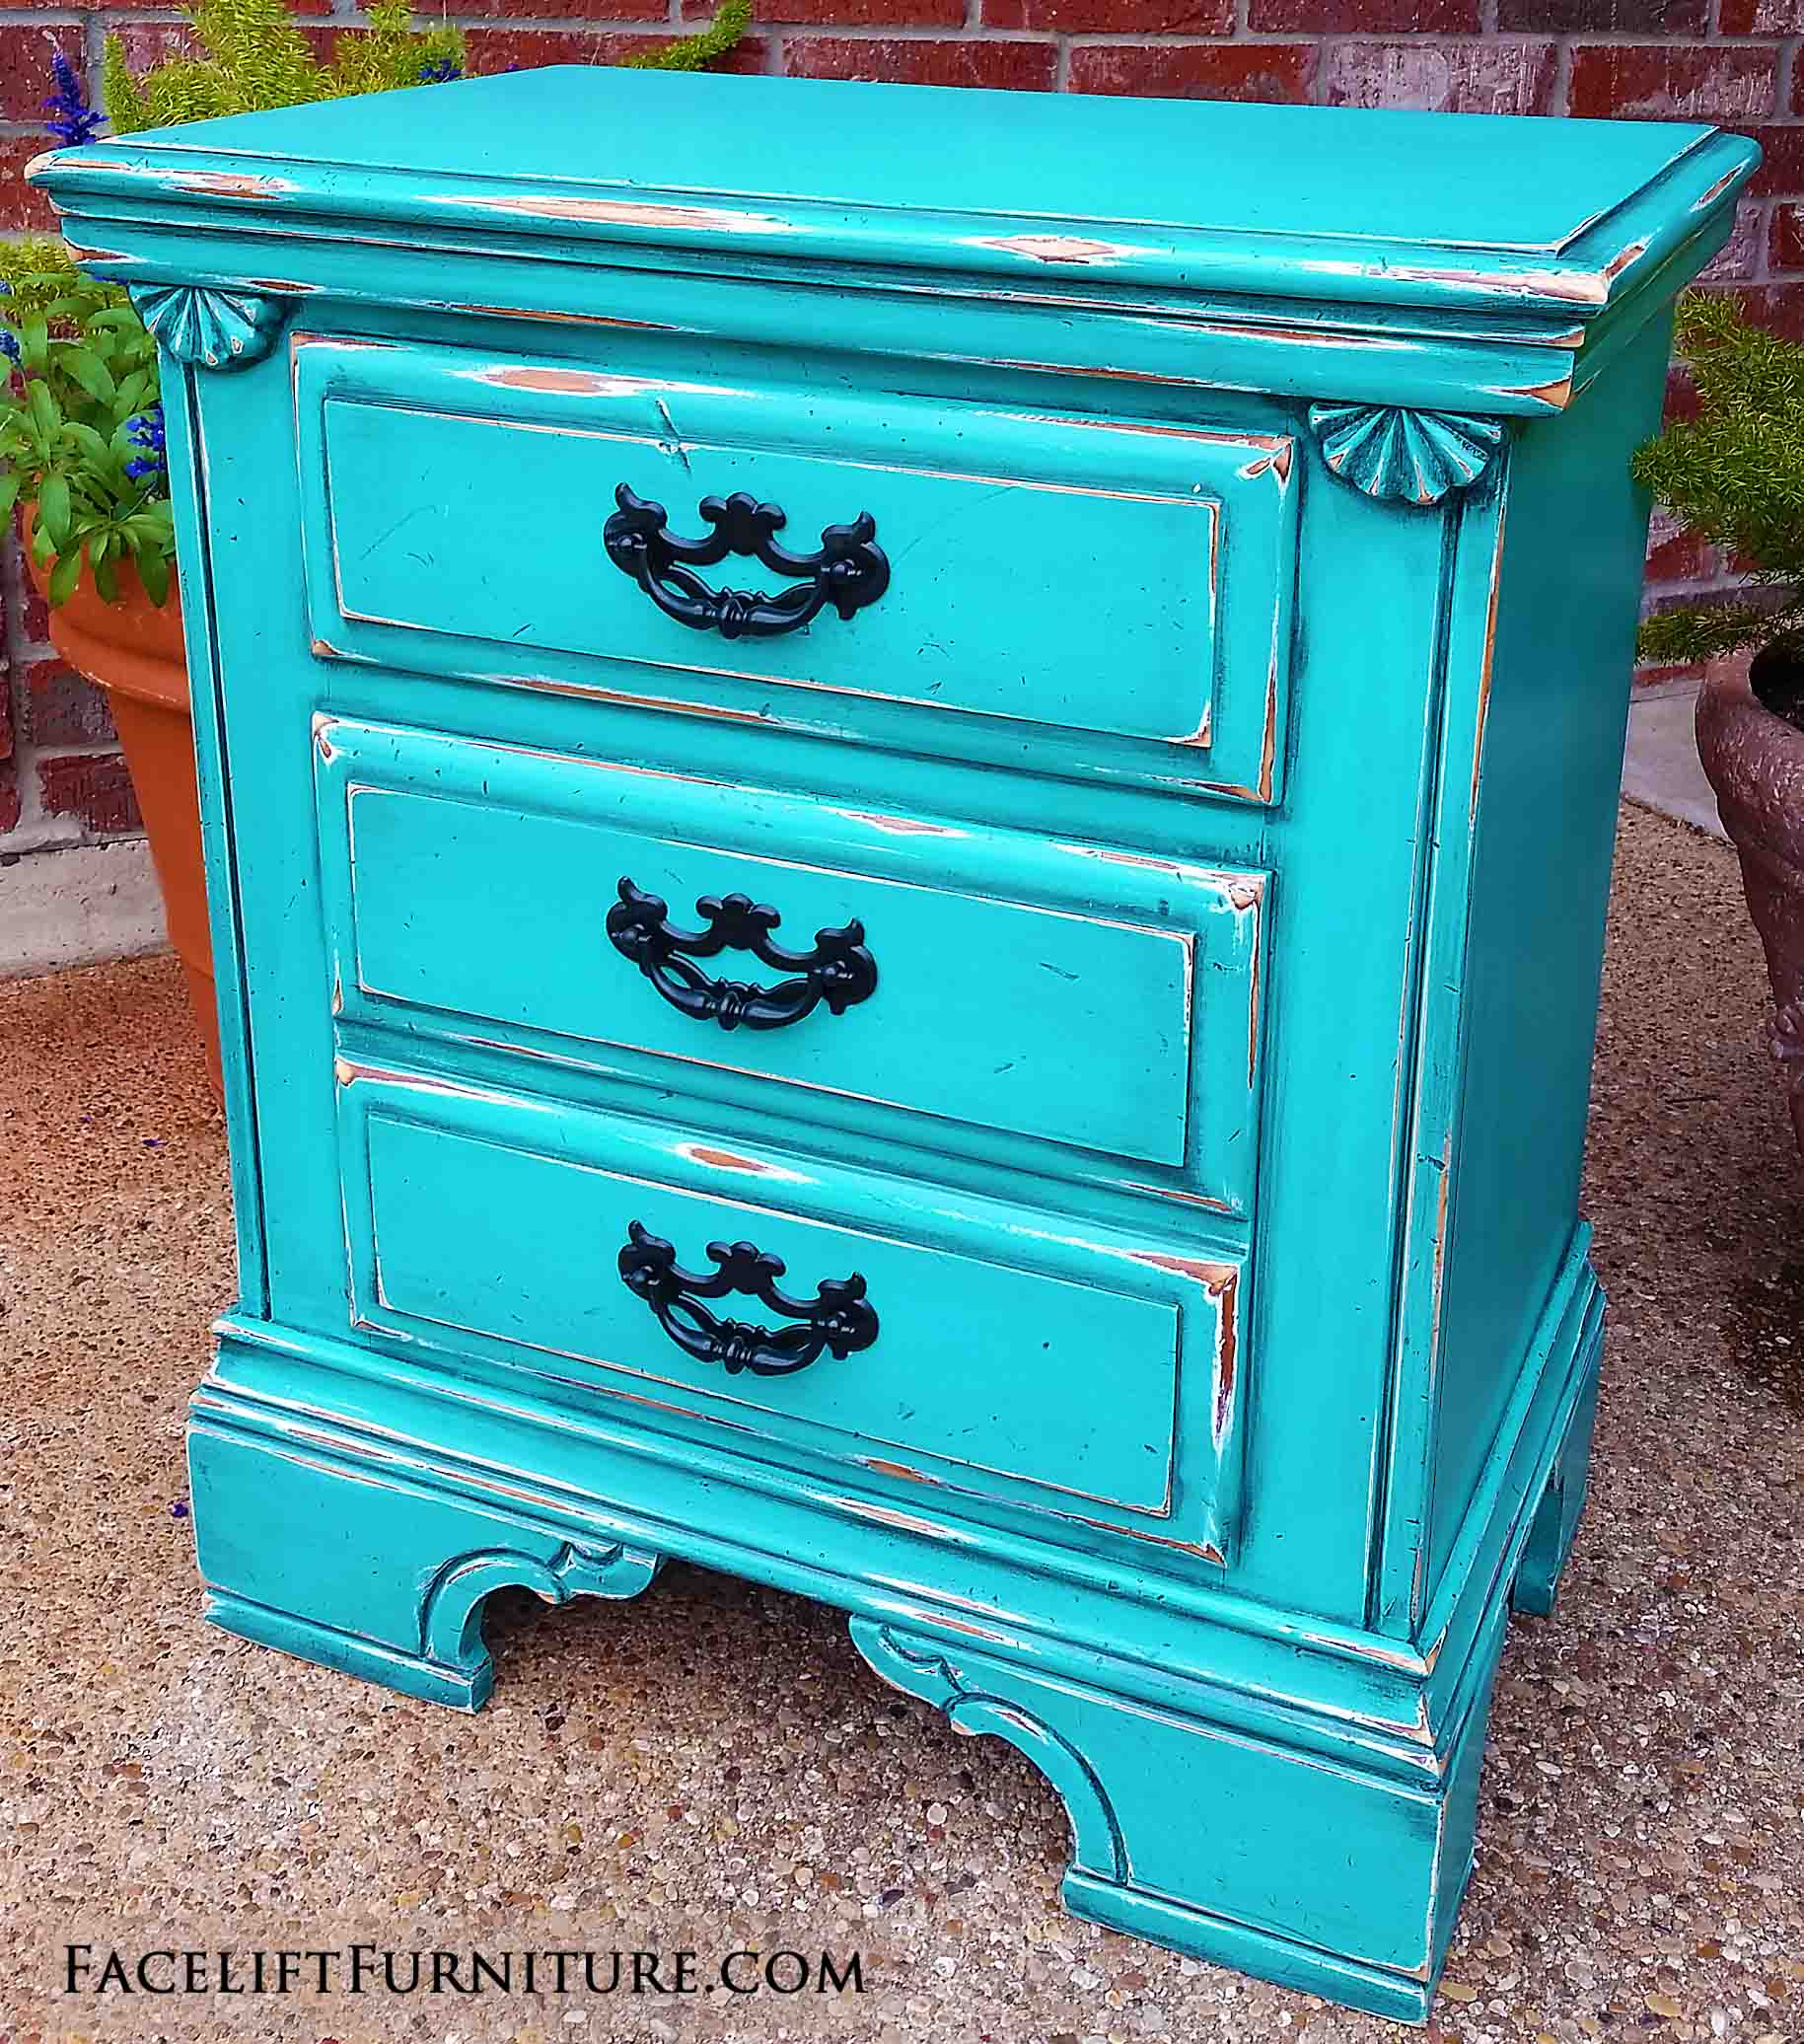 Greatest Nightstand in Distressed Turquoise & Black Glaze - Facelift Furniture RO46